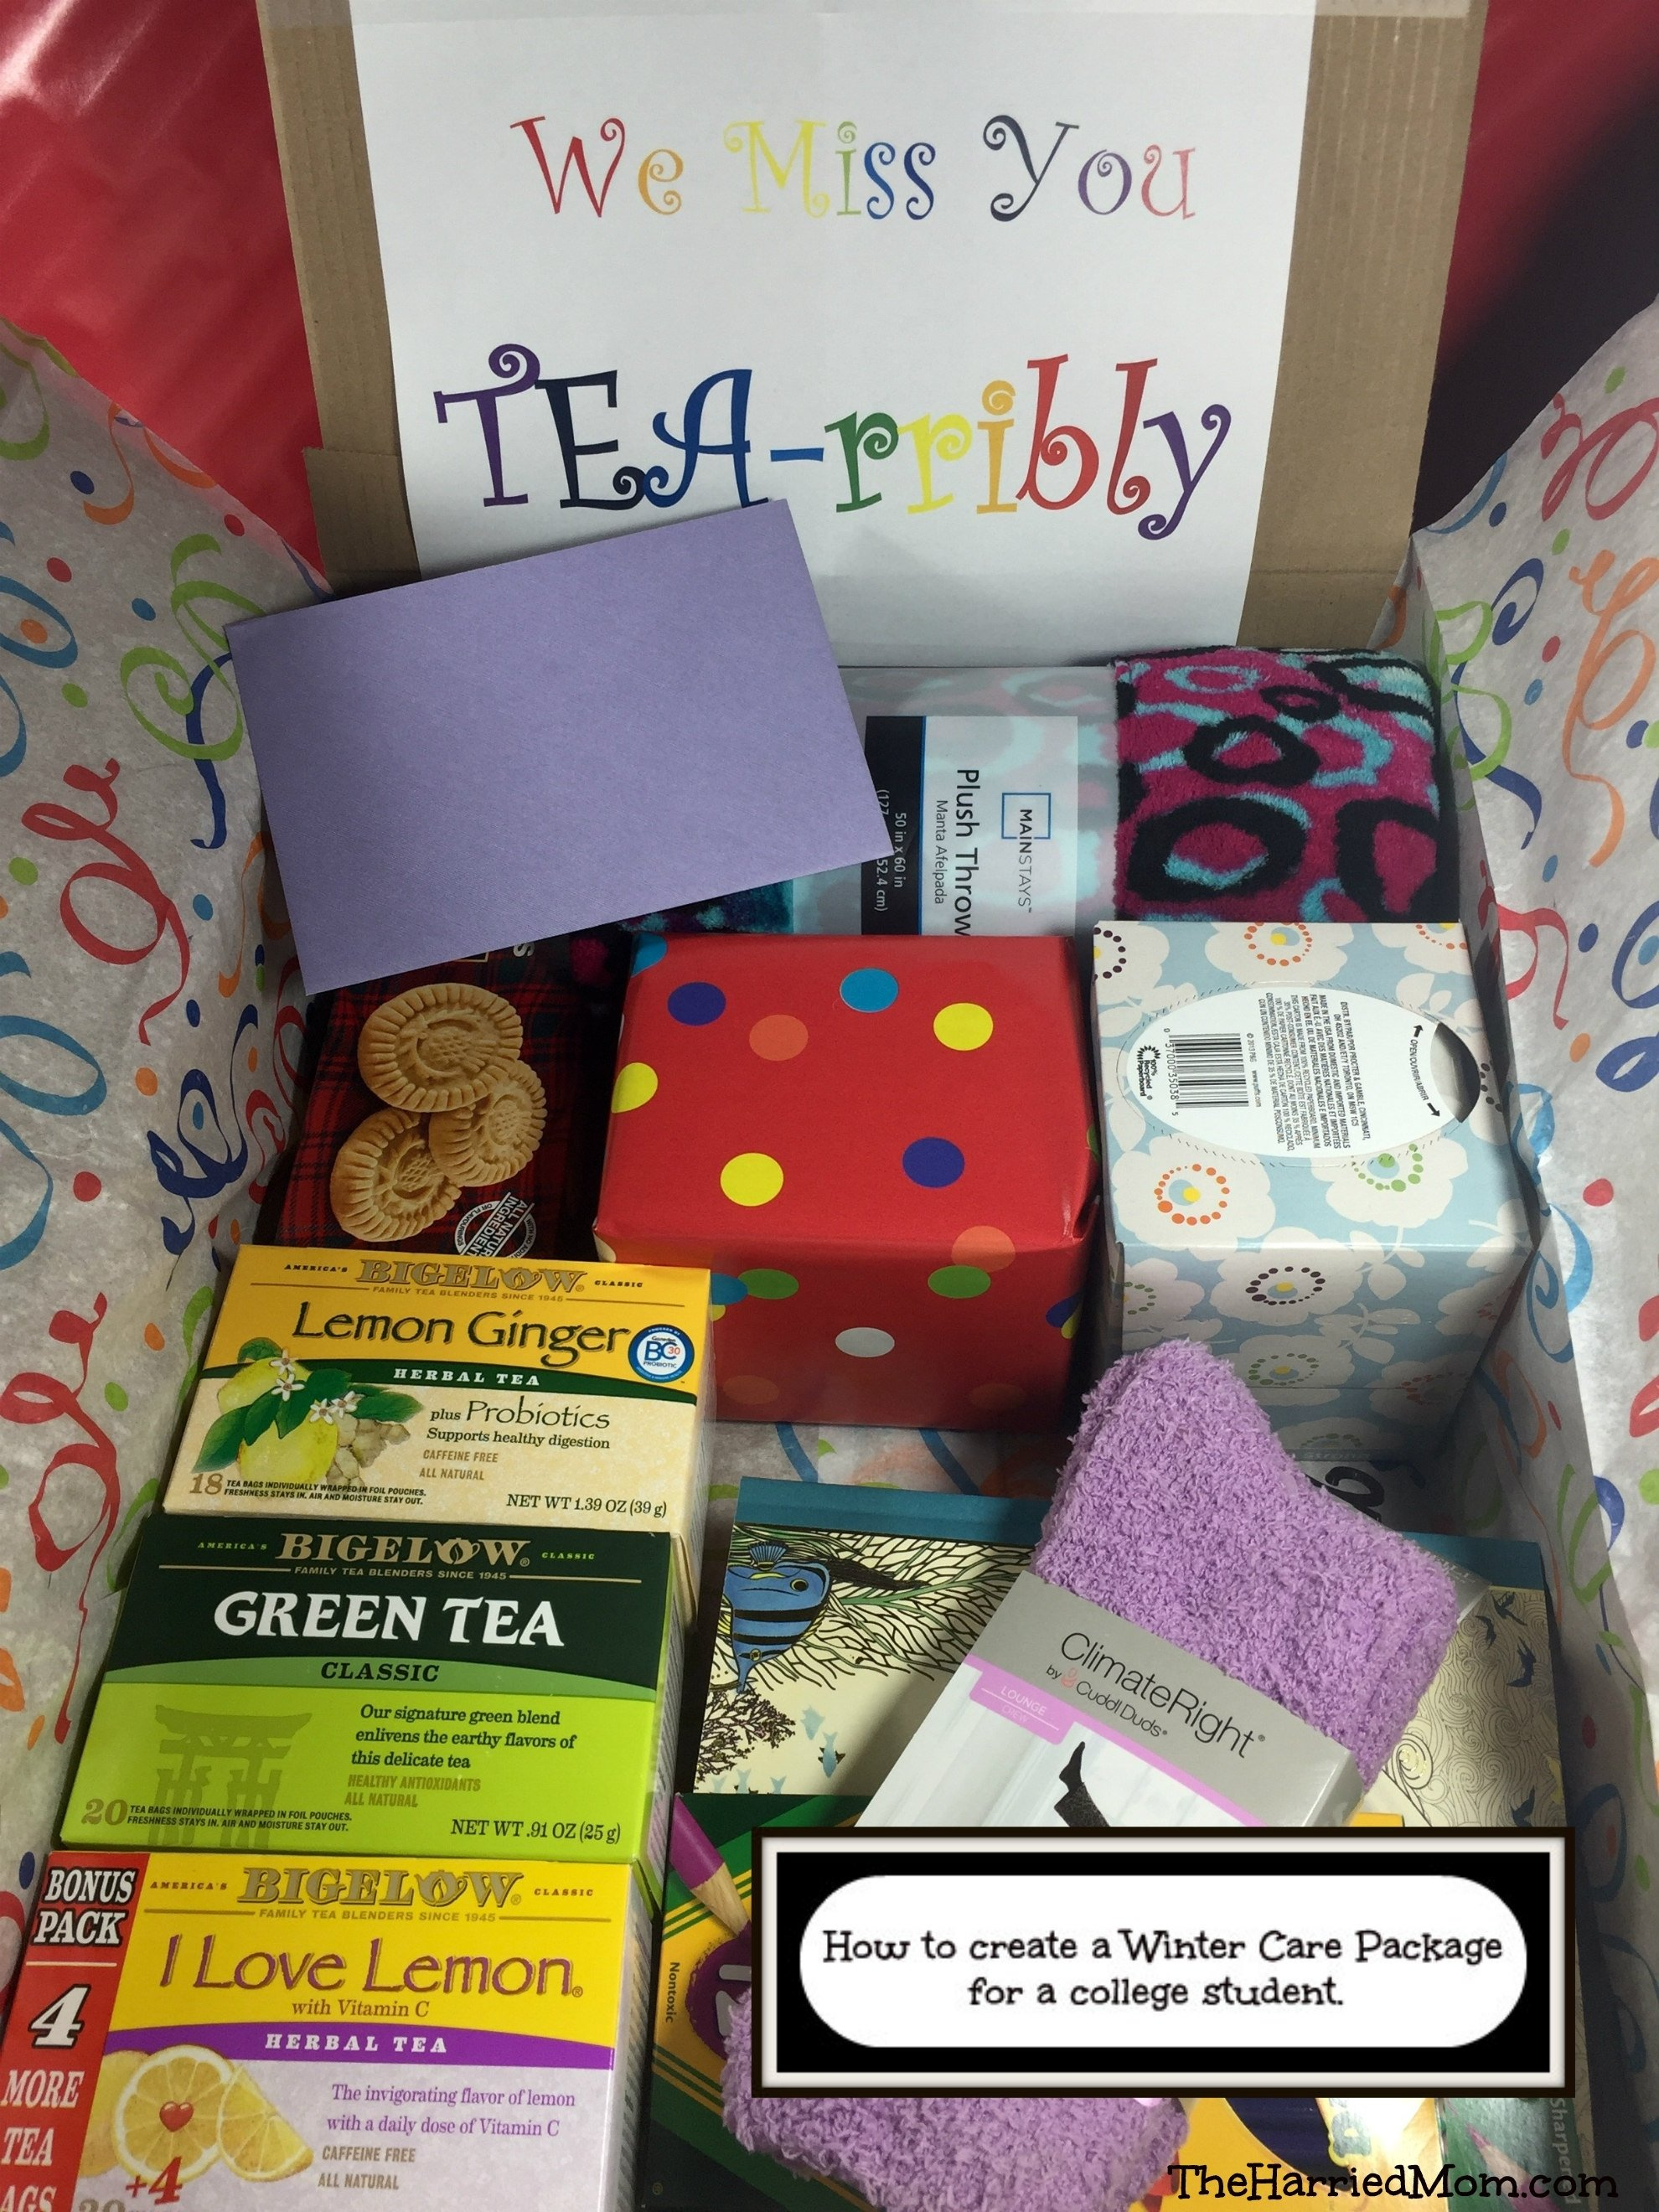 10 Fashionable Care Package Ideas For College Students how to create a winter care package for a college student 4